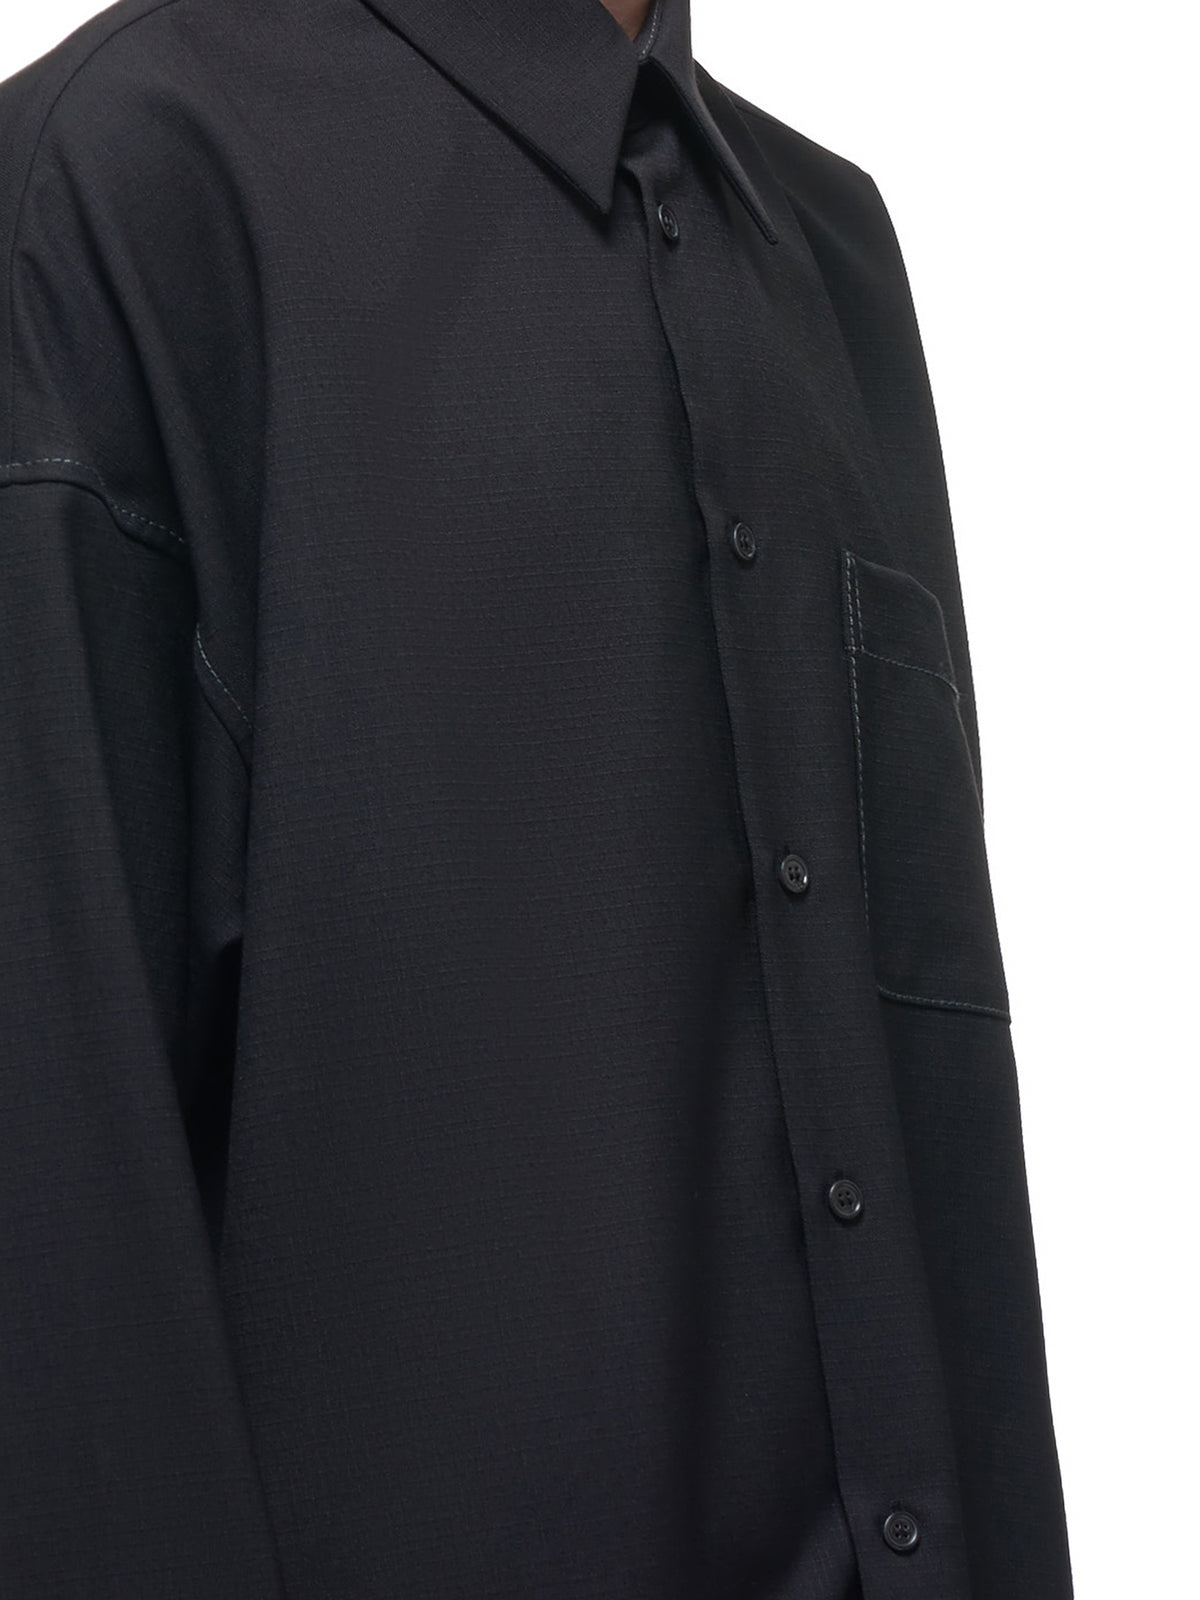 Wool Button Down Shirt (CUMU0061A0-S52744-BLACK)